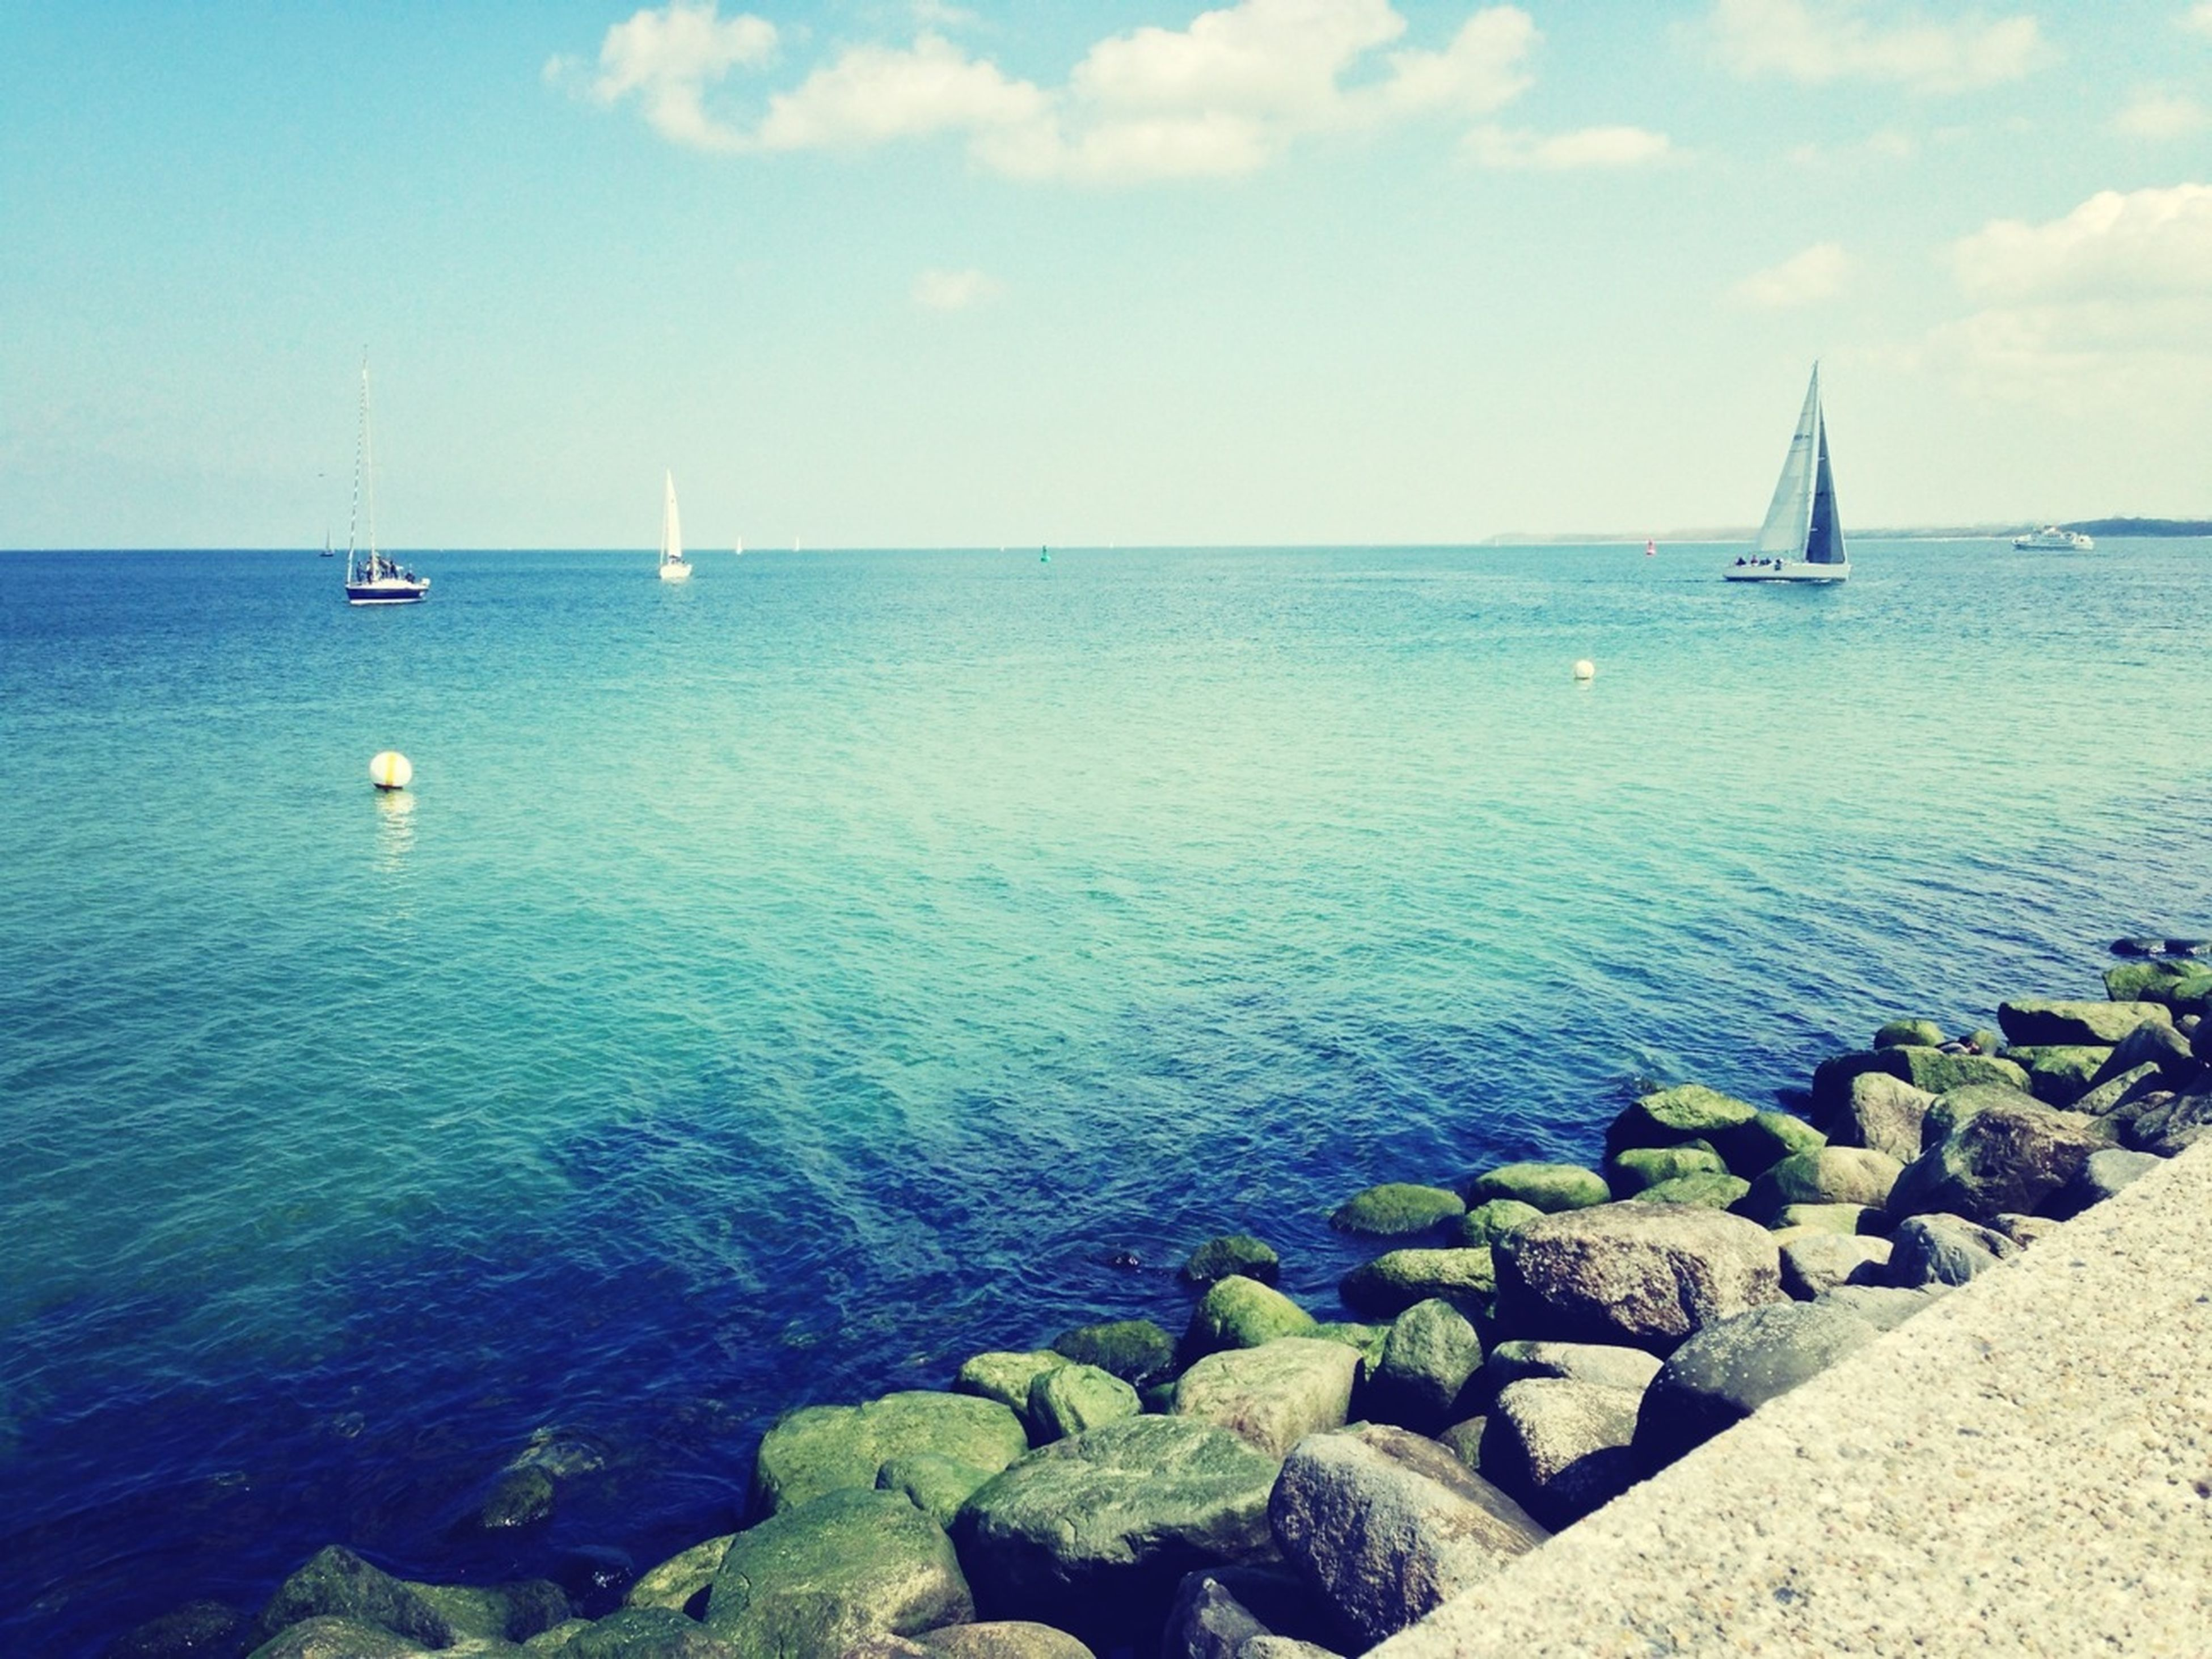 sea, water, horizon over water, transportation, nautical vessel, mode of transport, tranquil scene, tranquility, scenics, sky, beauty in nature, blue, boat, nature, rock - object, seascape, idyllic, day, travel, sailboat